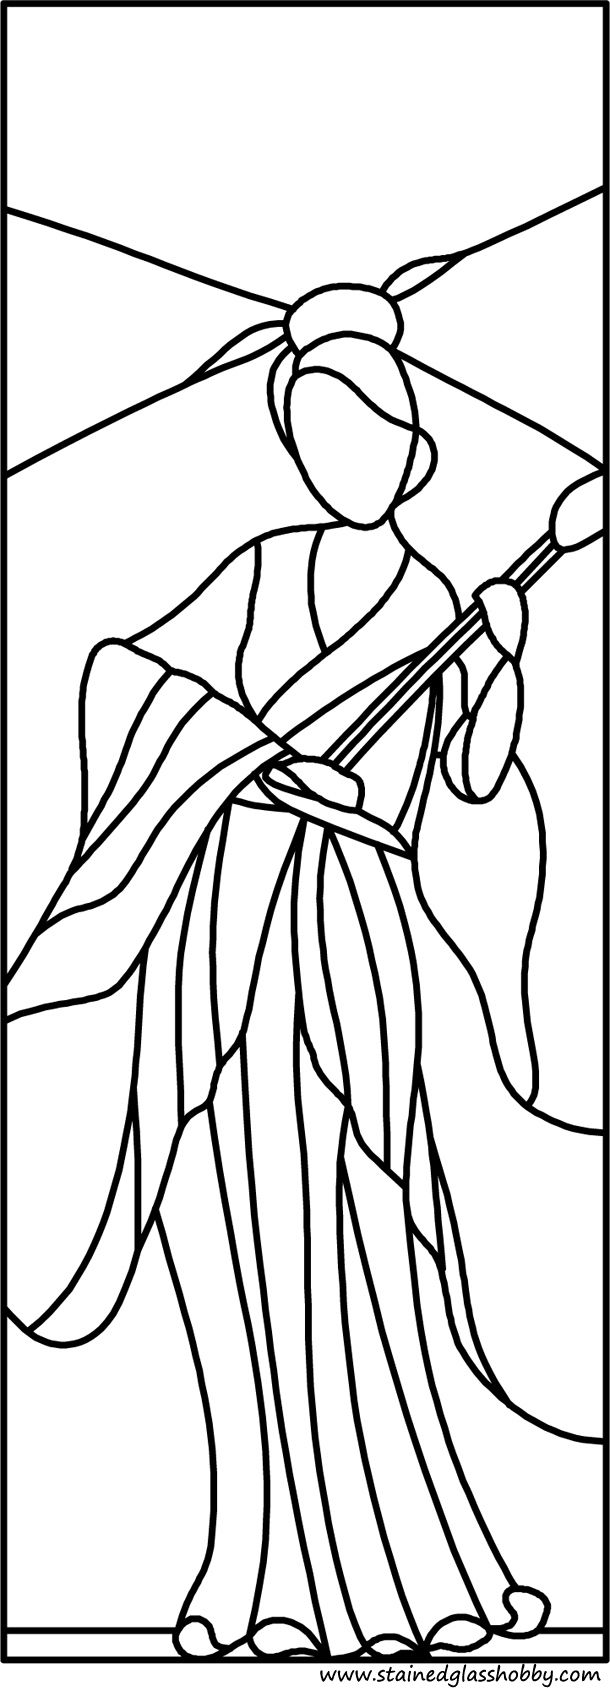 Coloring pages for donna flor - Find This Pin And More On Zendoodling Coloring Pages